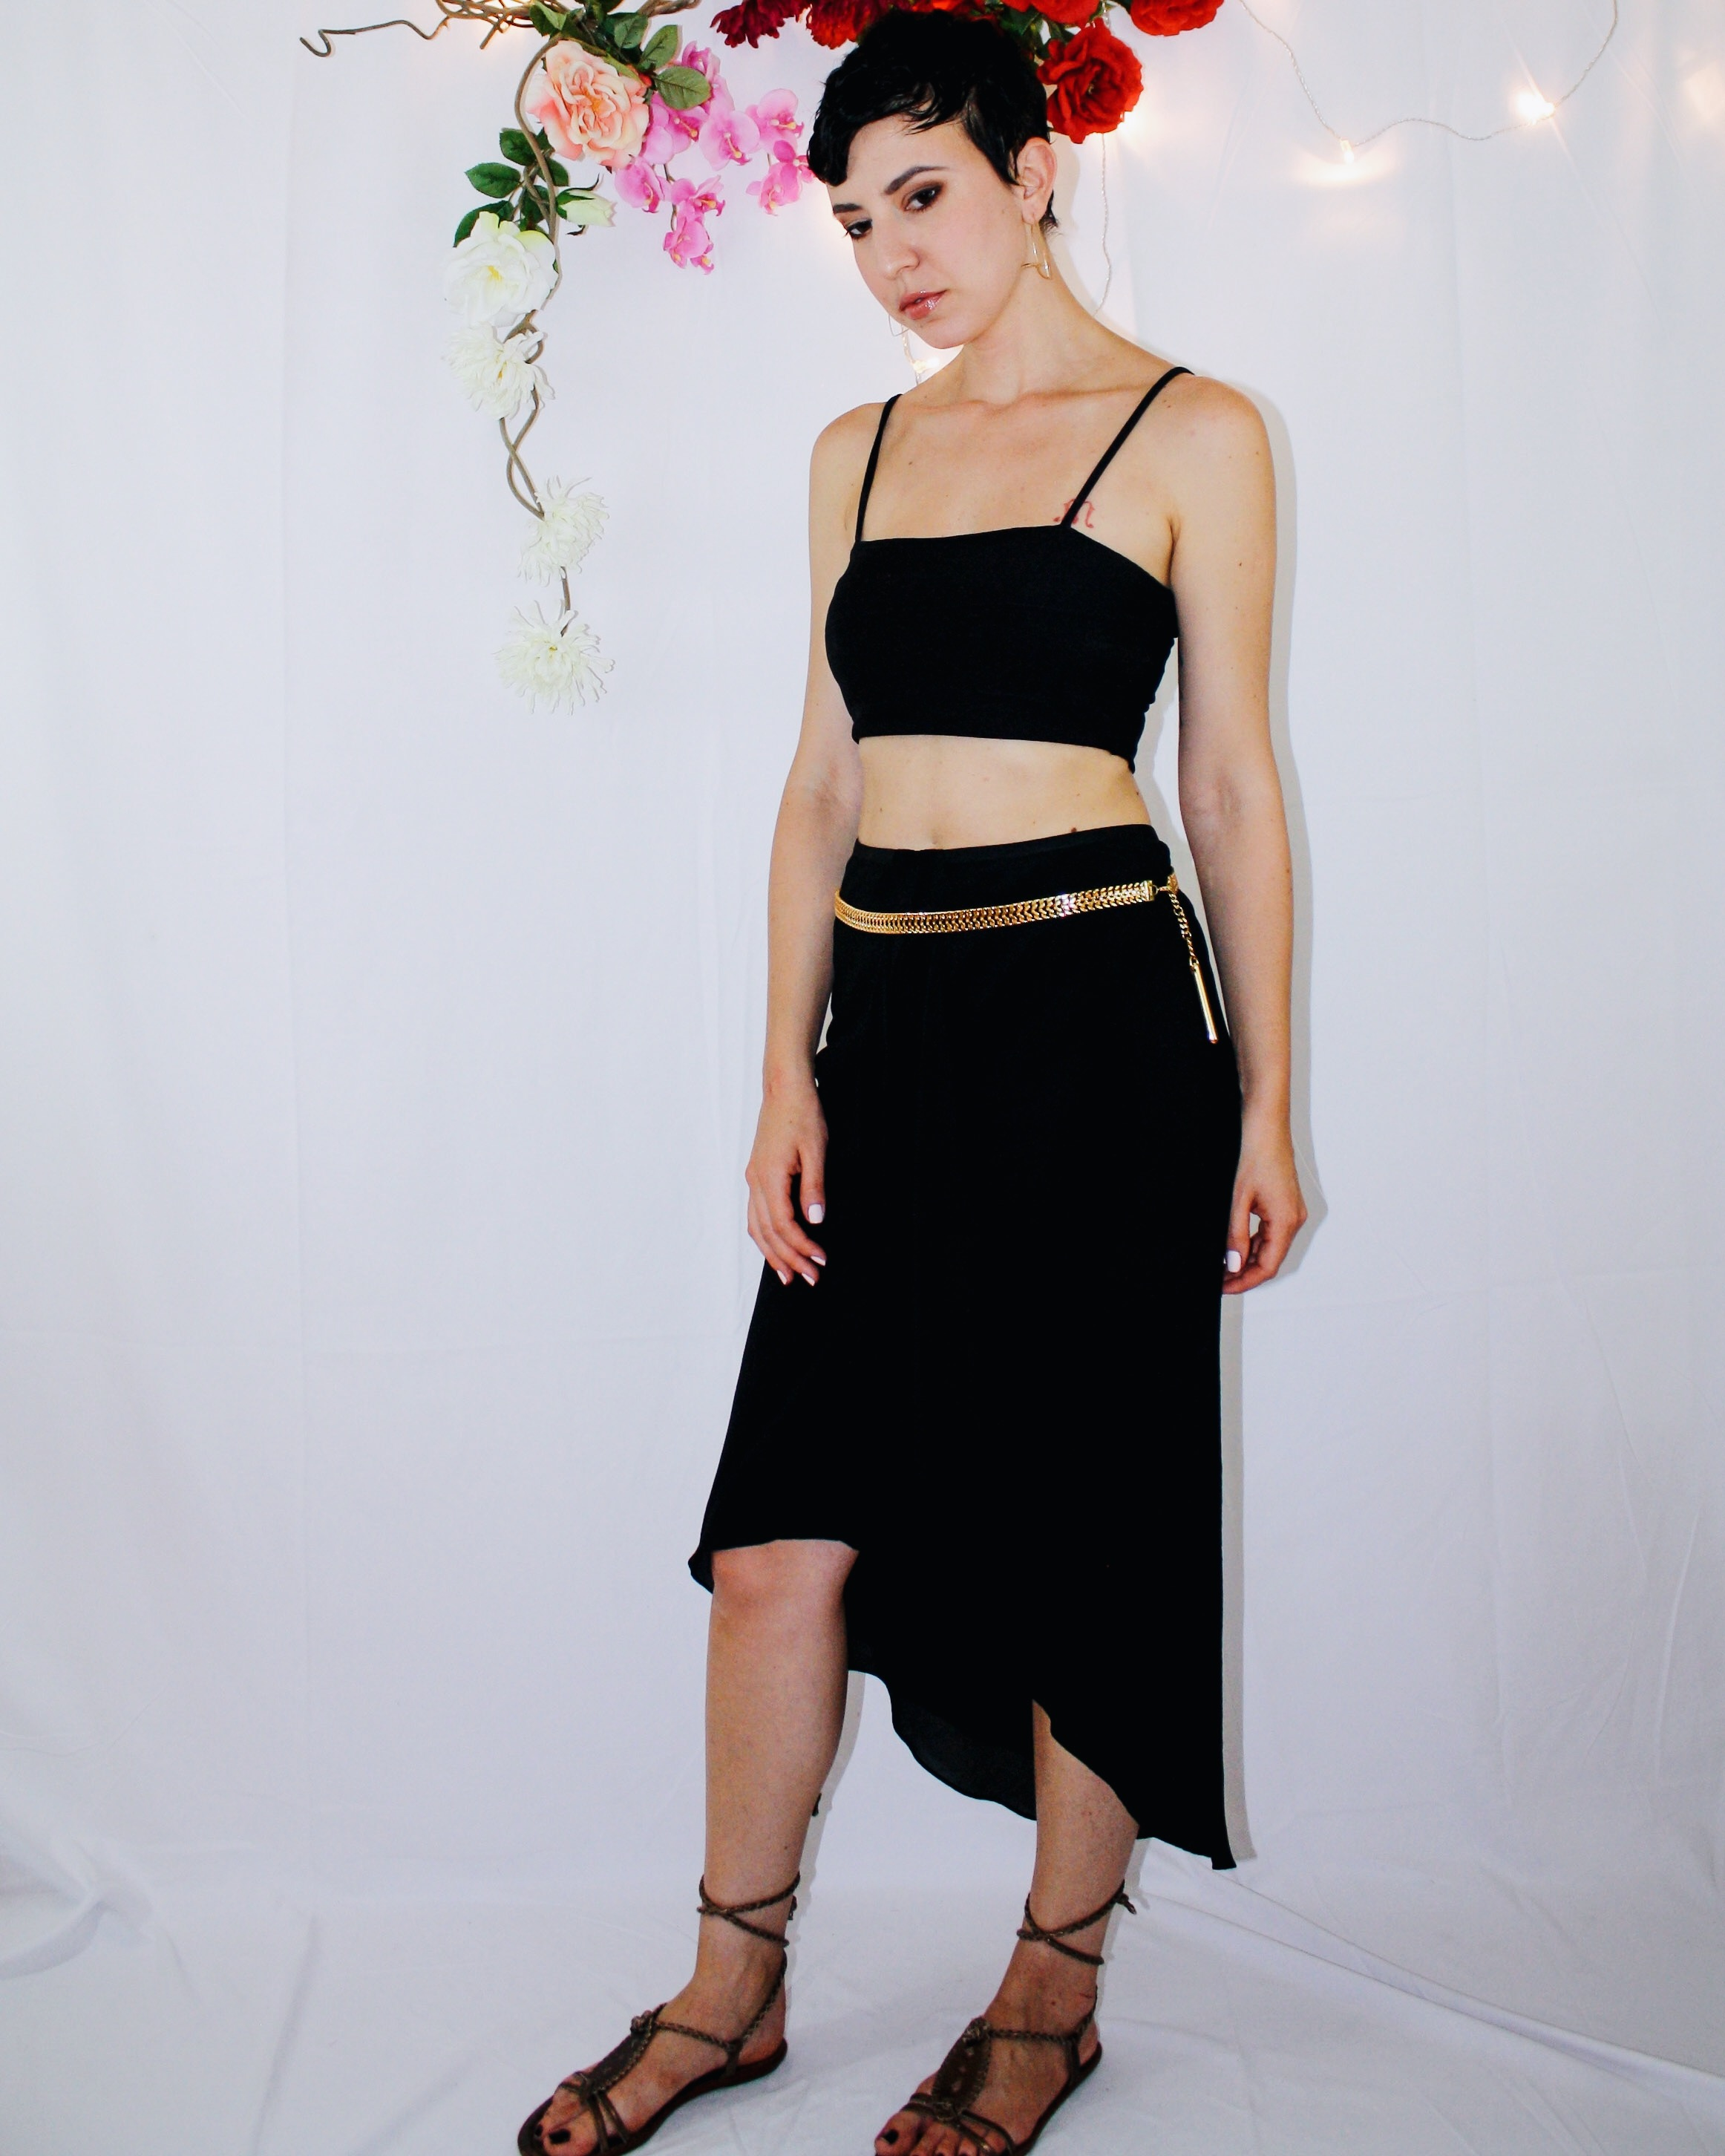 heatwave outfit waterfall skirt black crop top lace up sandal backpack 4